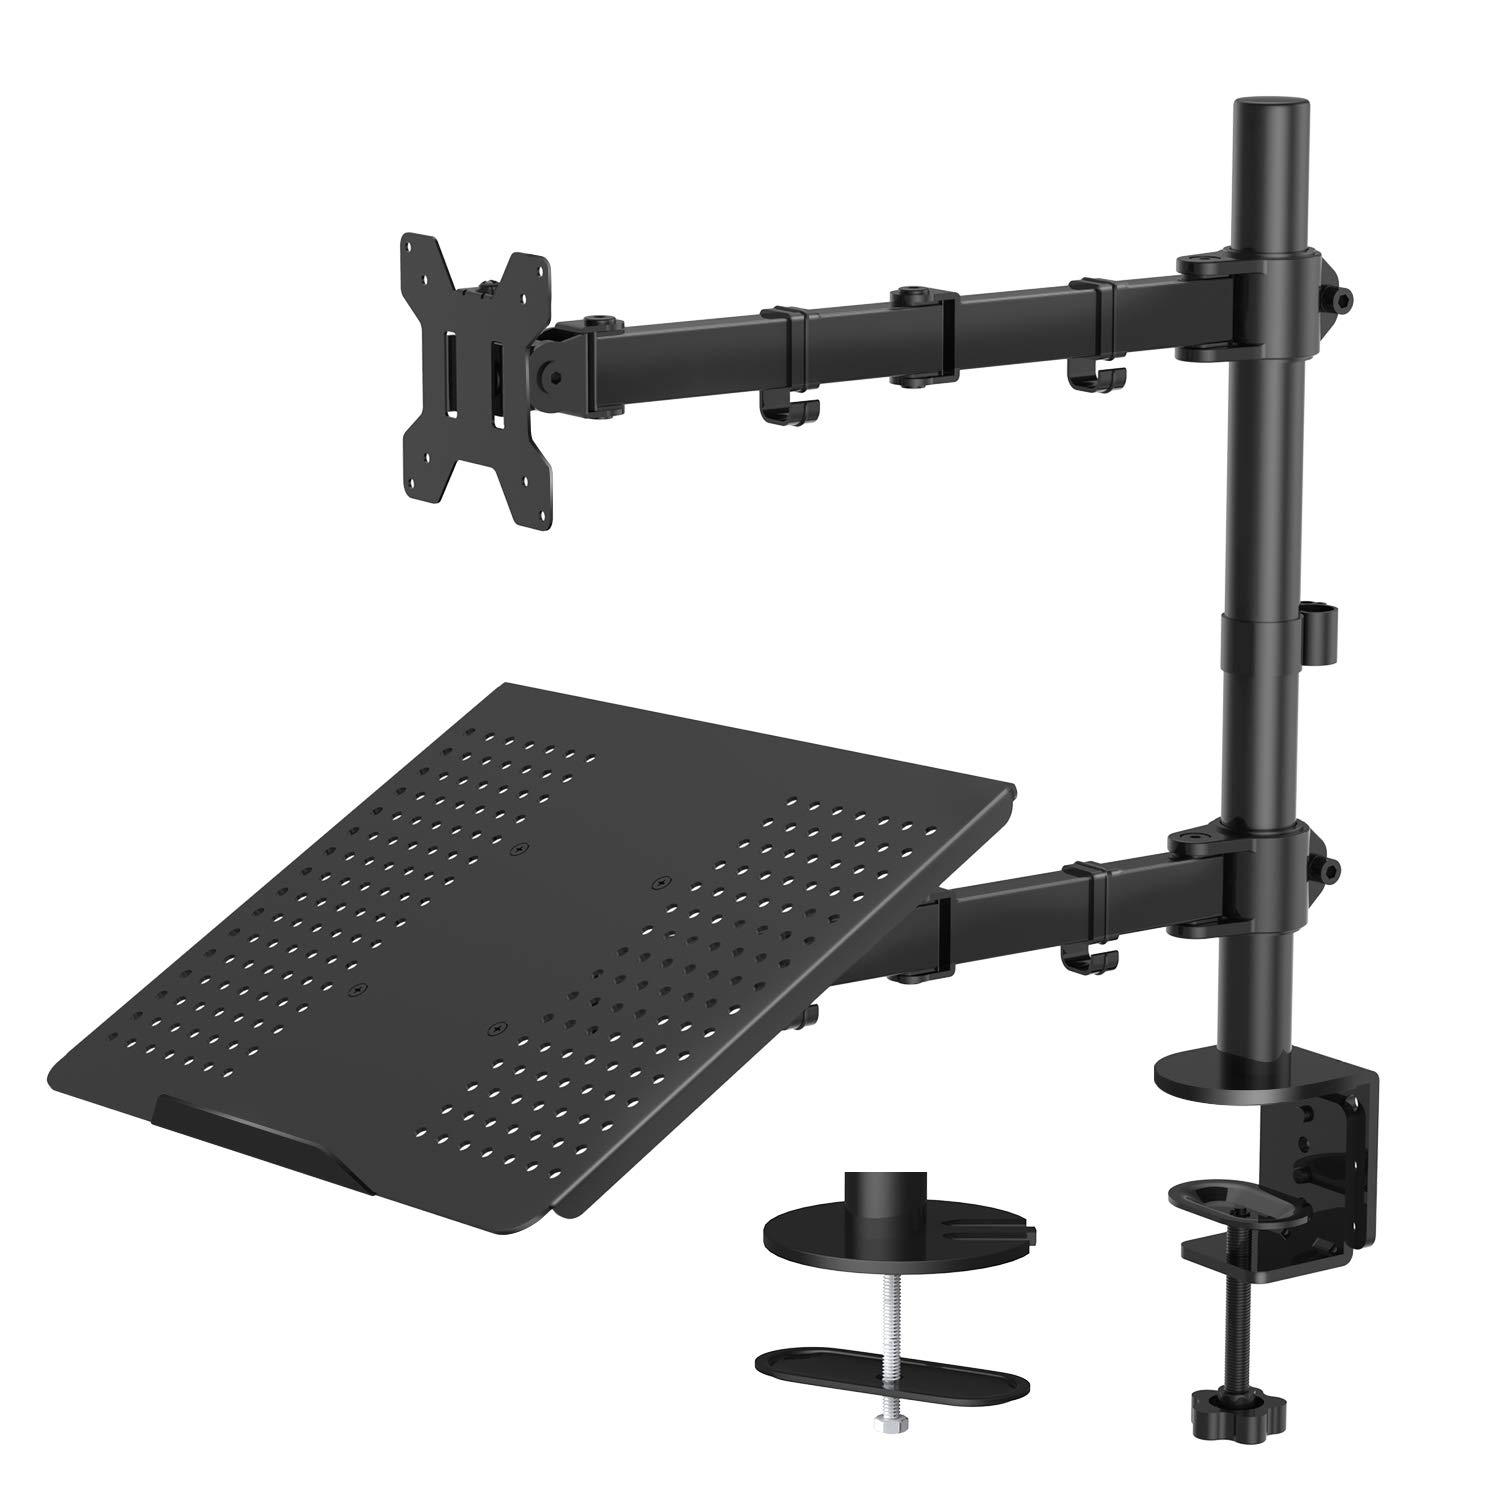 """Monitor Stand with Keyboard Tray - Adjustable Desk Mount Laptop Holder with Clamp and Grommet Mounting Base for 13 to 27 Inch LCD Computer Screens Up to 22lbs, Notebook up to 17"""""""